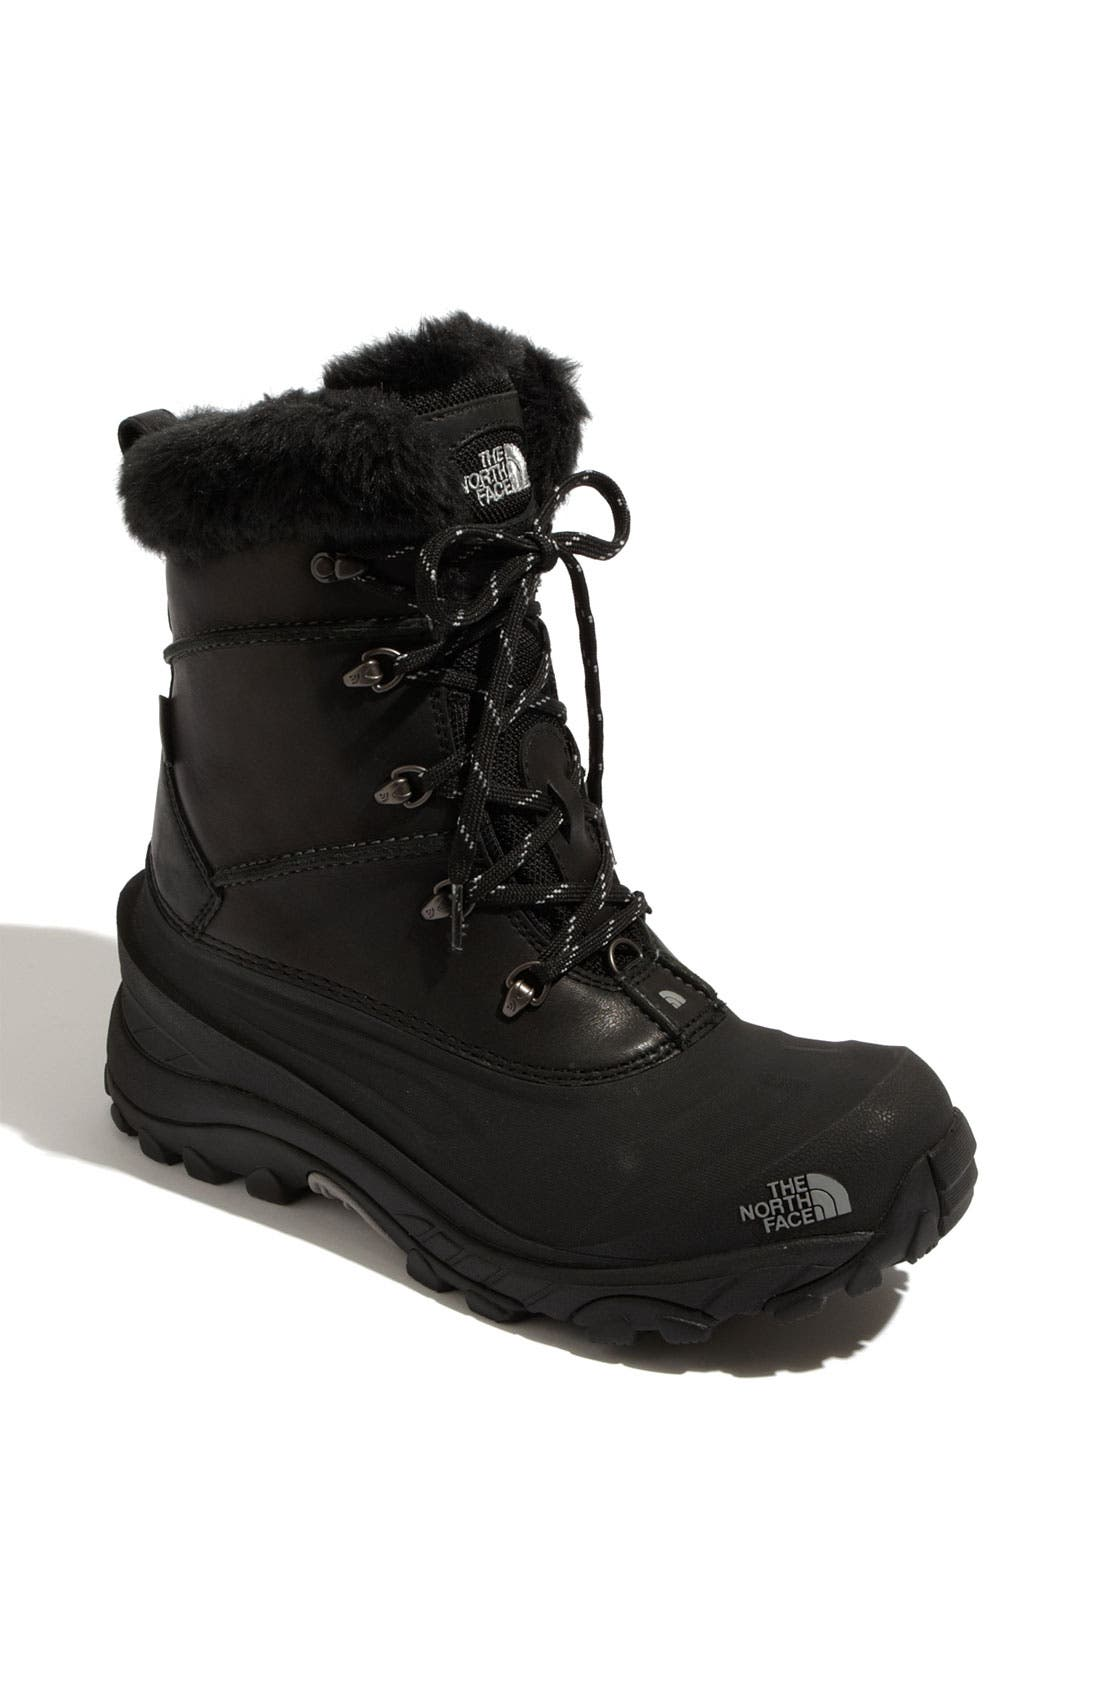 Alternate Image 1 Selected - The North Face 'McMurdo II' Boot